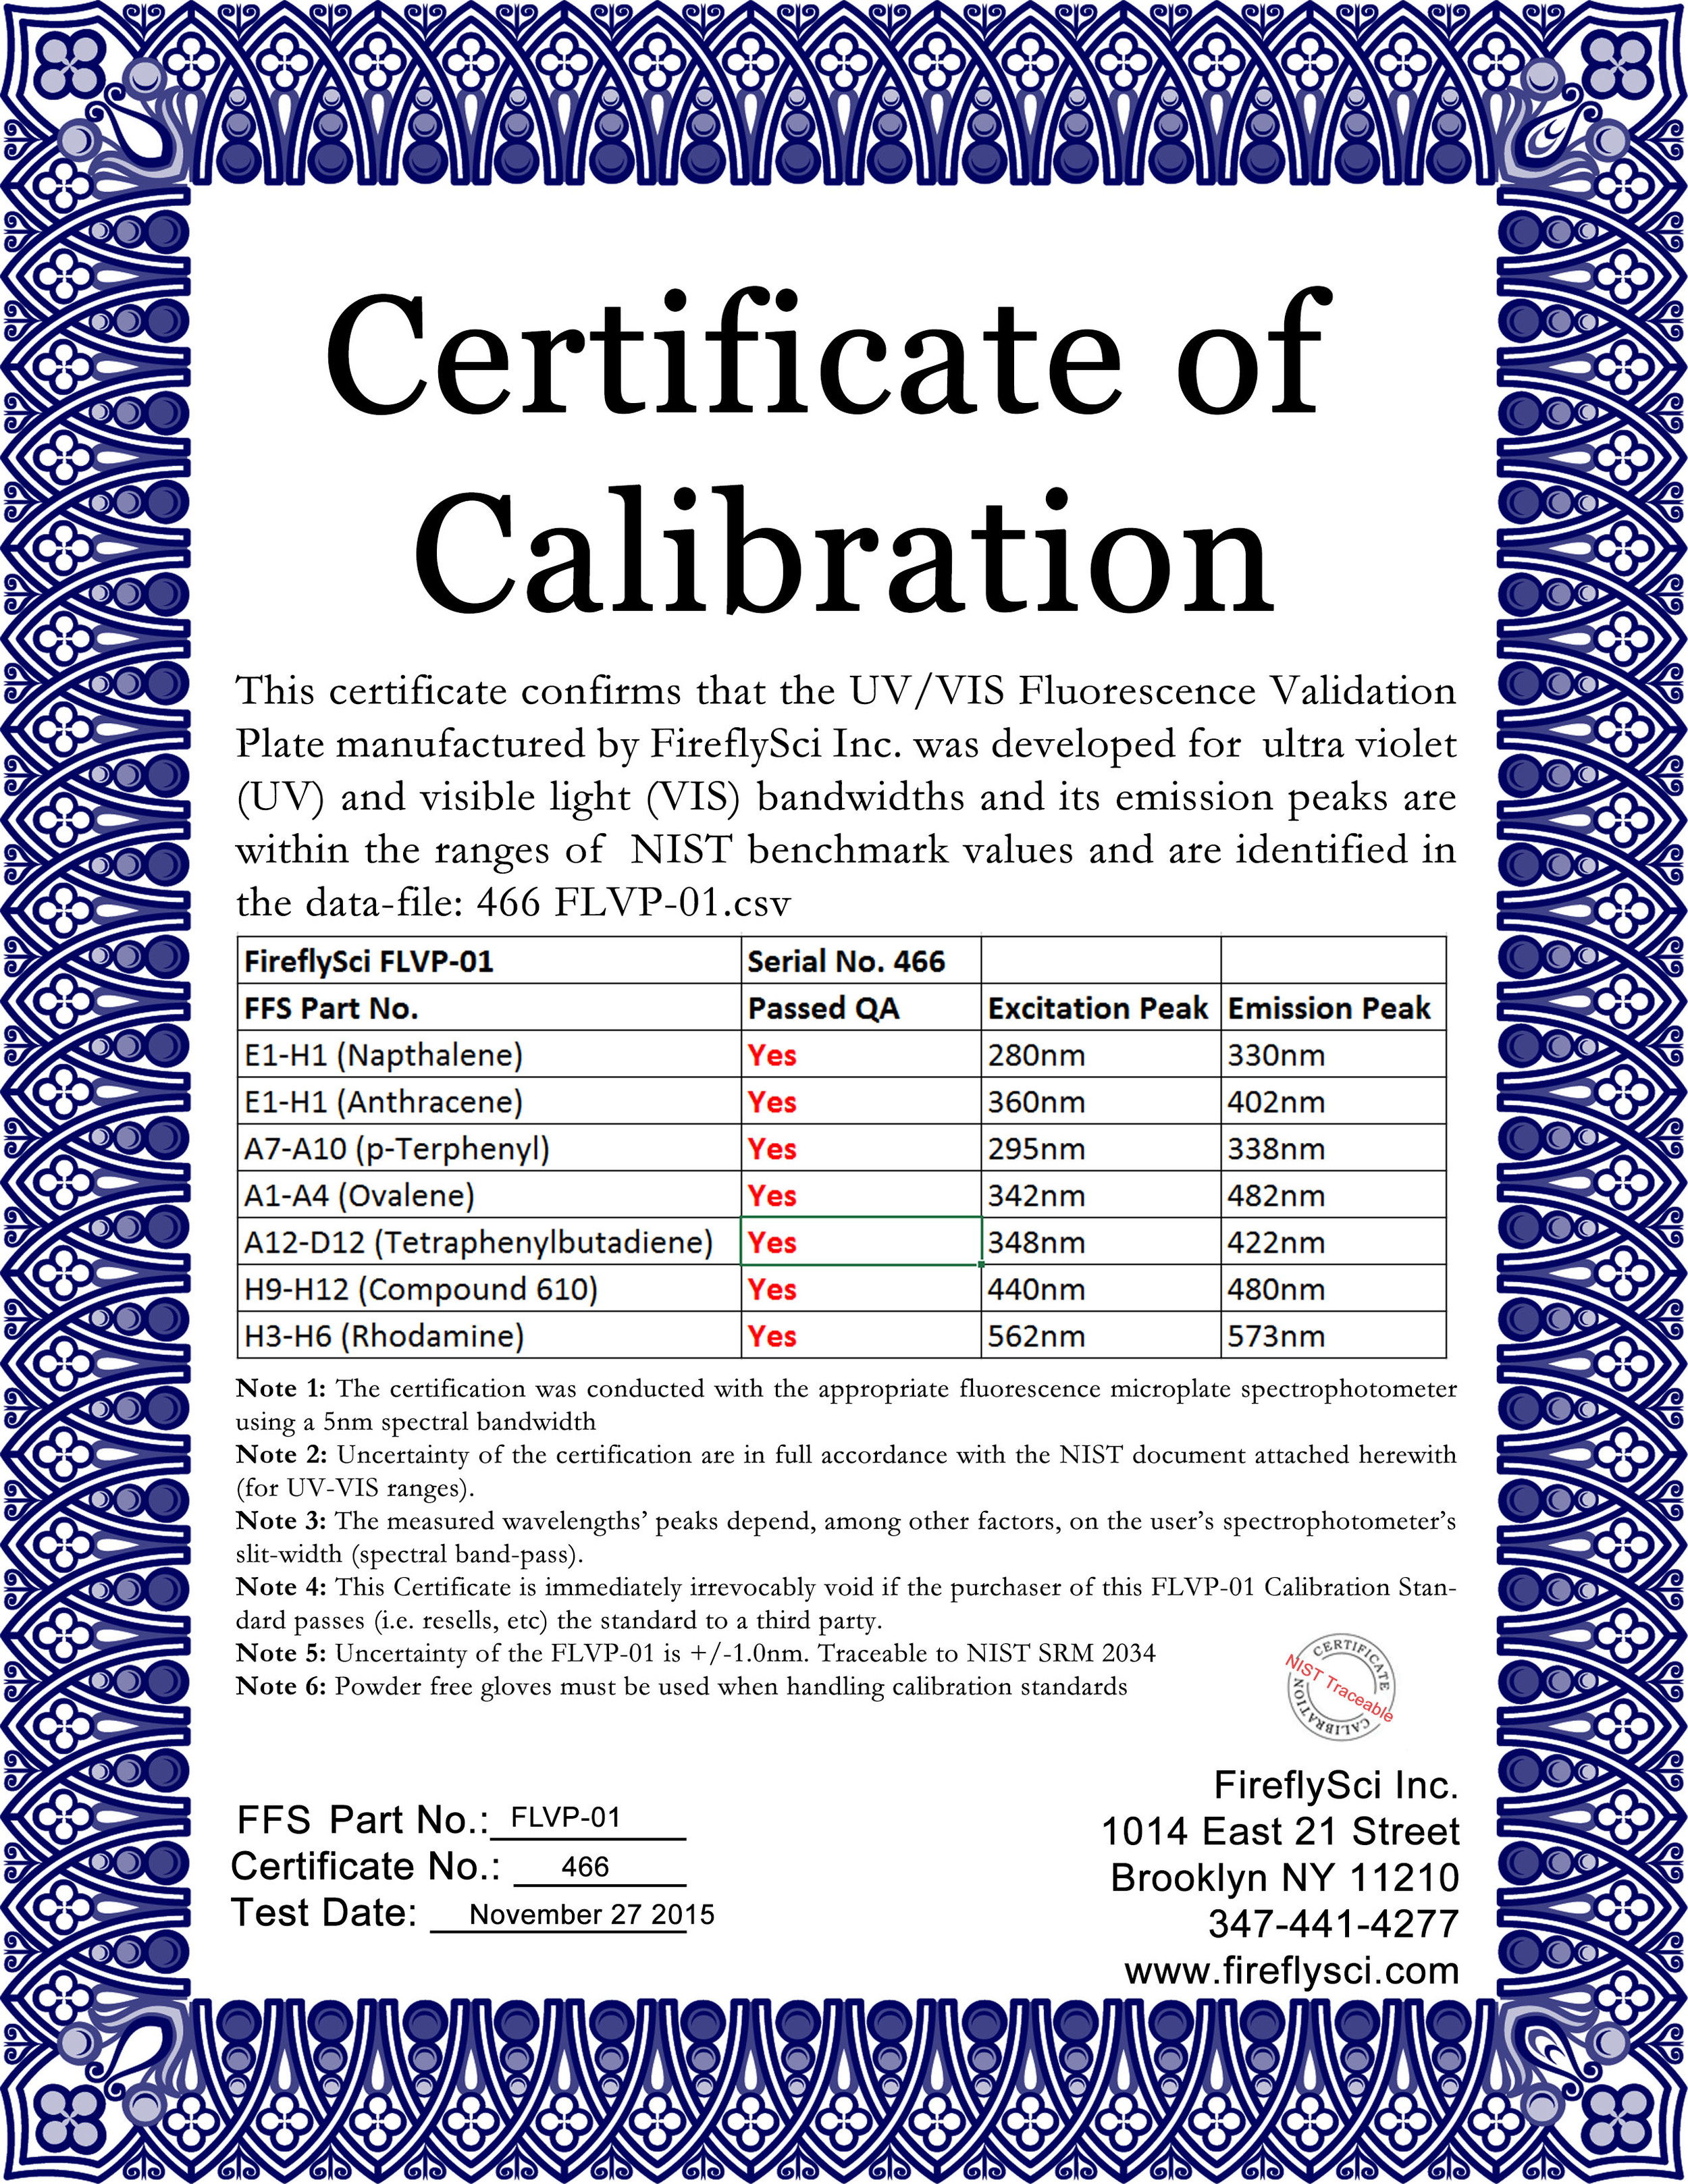 FLVP-01 Sample Certificate of Calibration